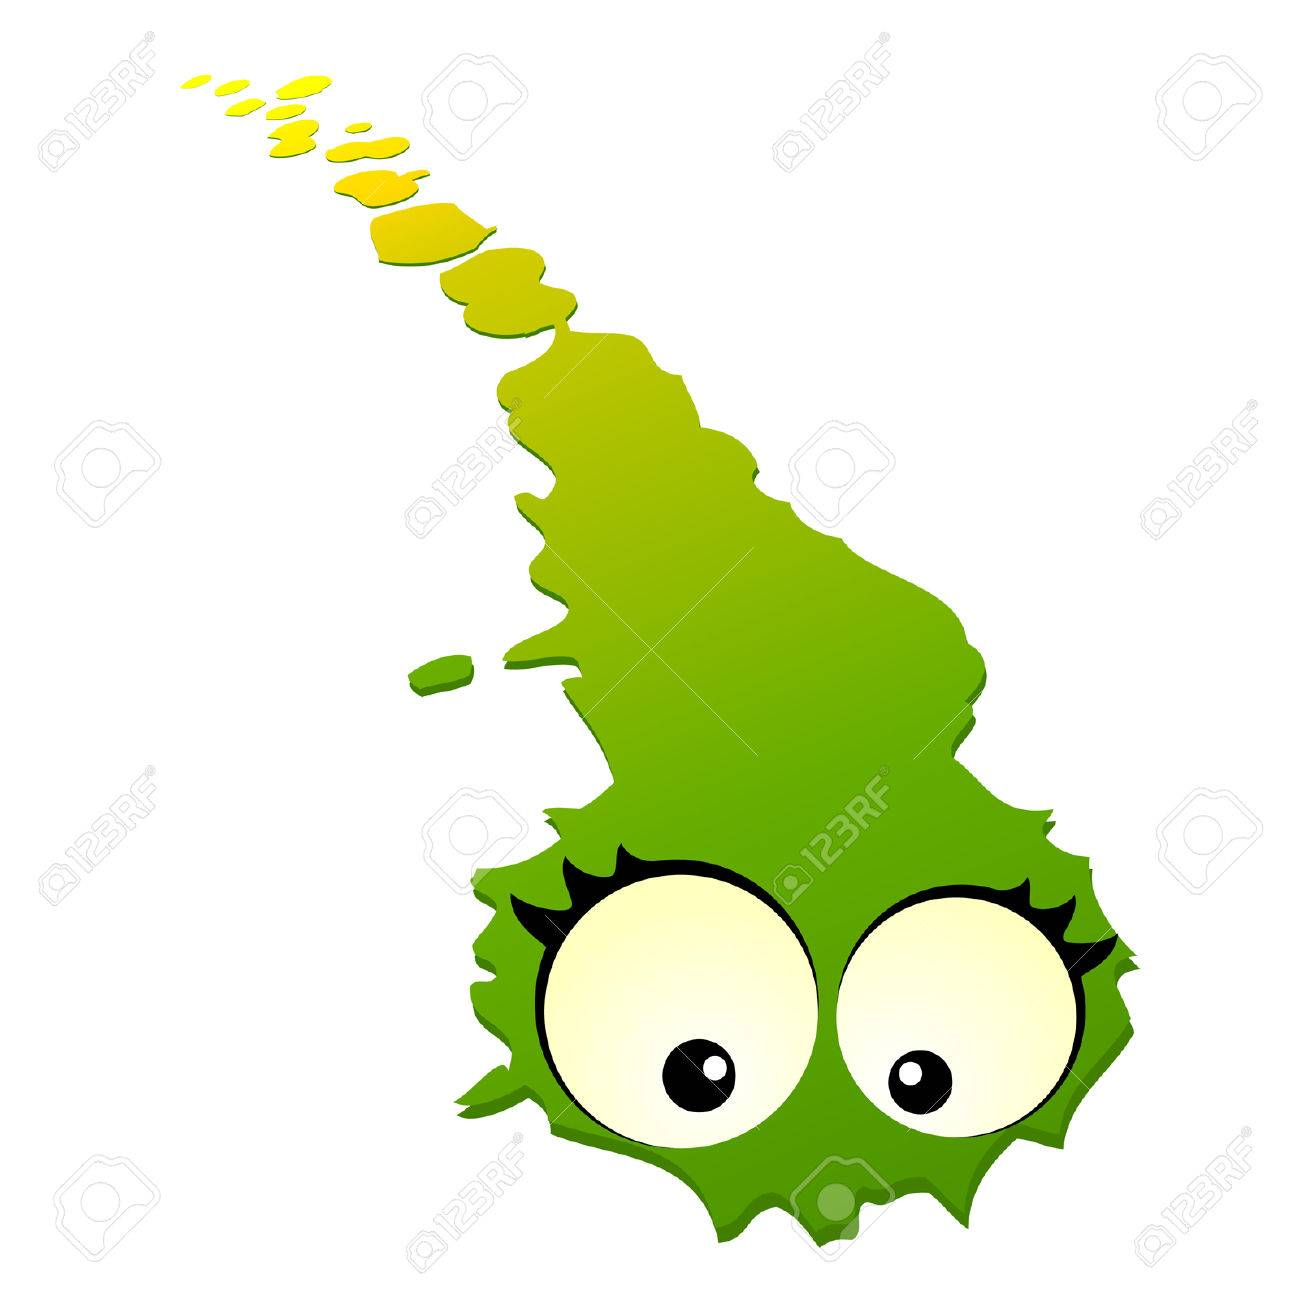 virus and germs Stock Vector - 7976994